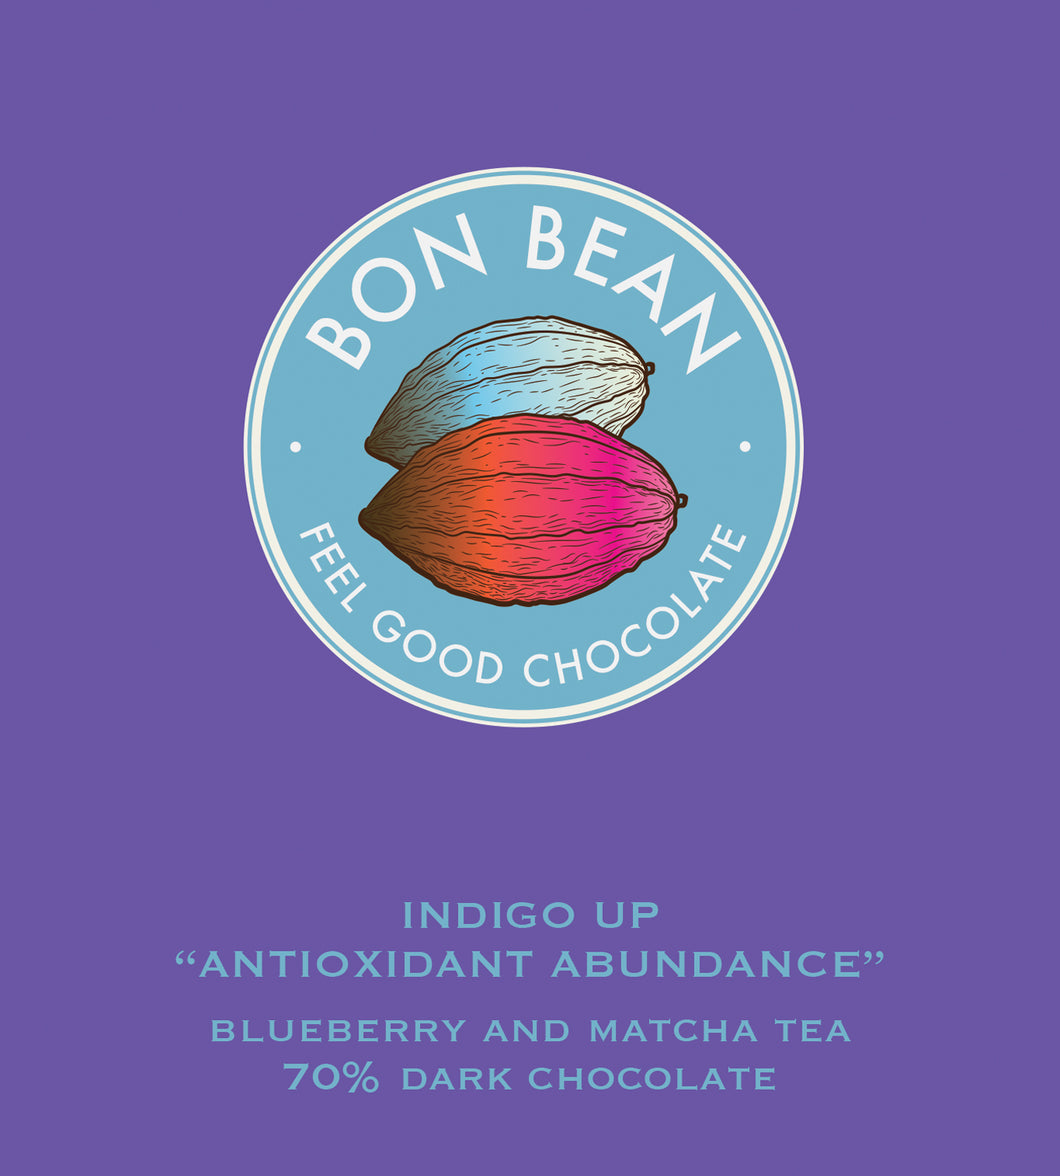 Bon Bean Indigo Up